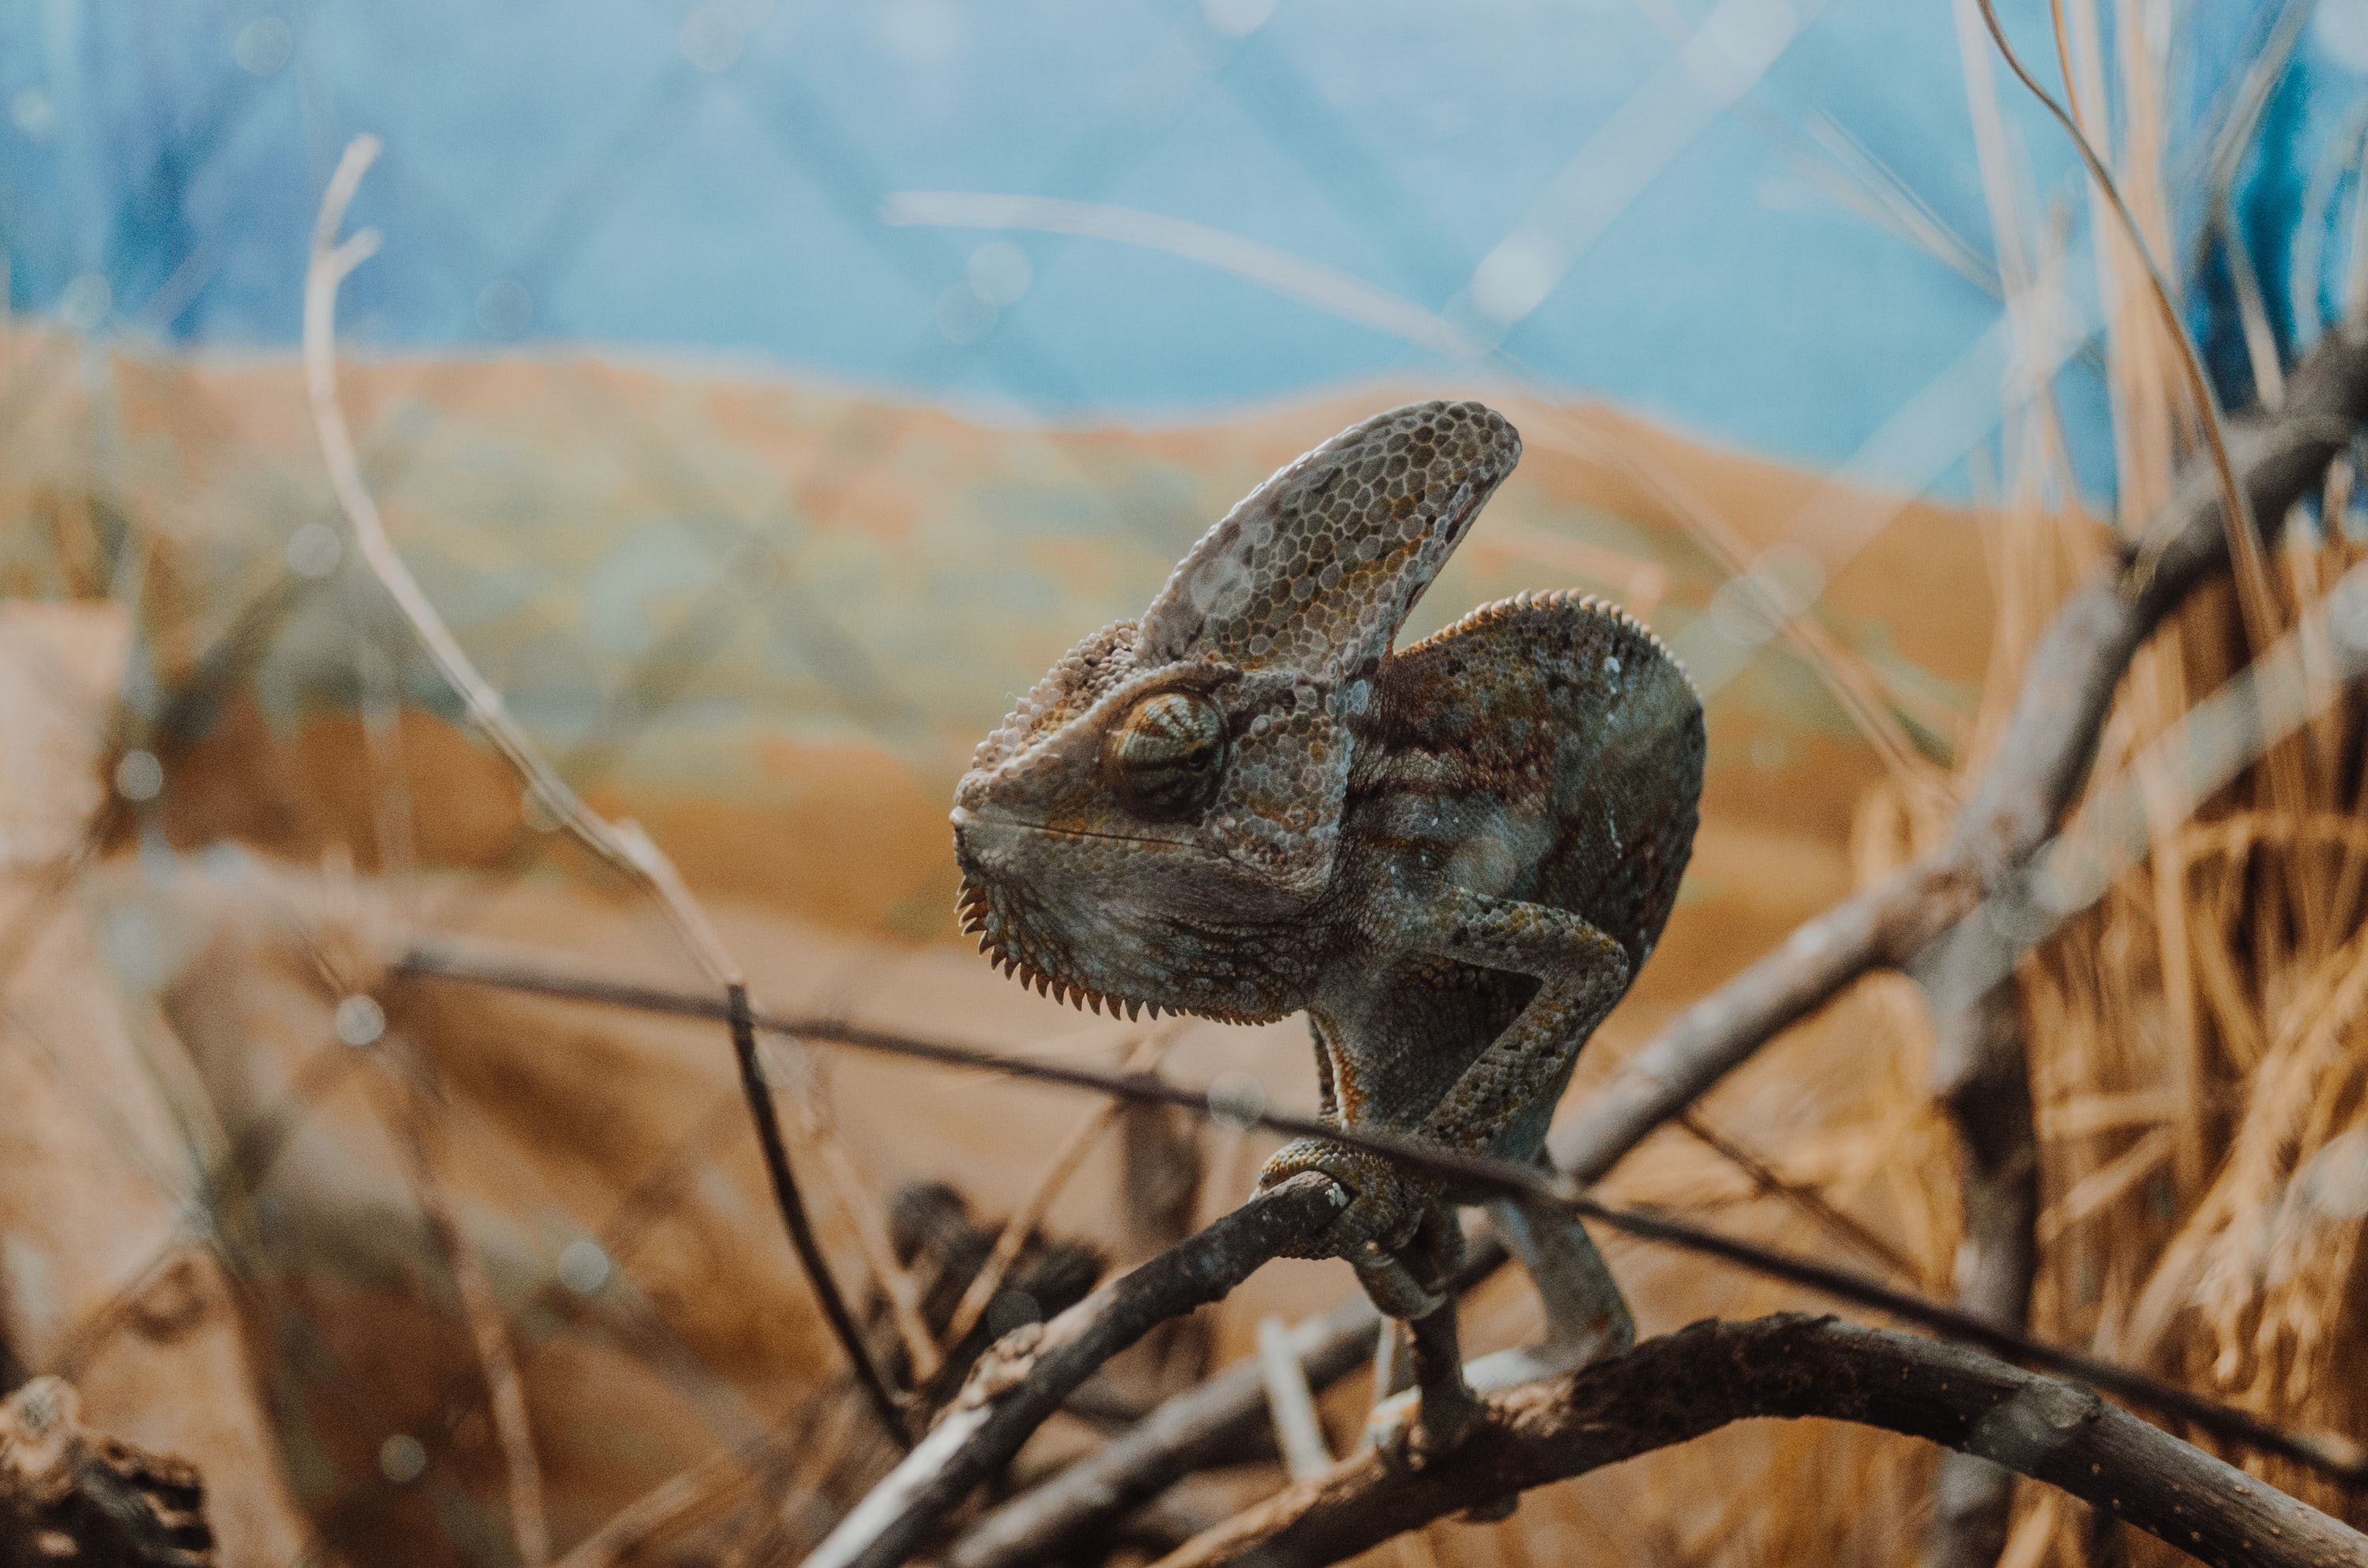 selective focus photography of gray chameleon on wood branch